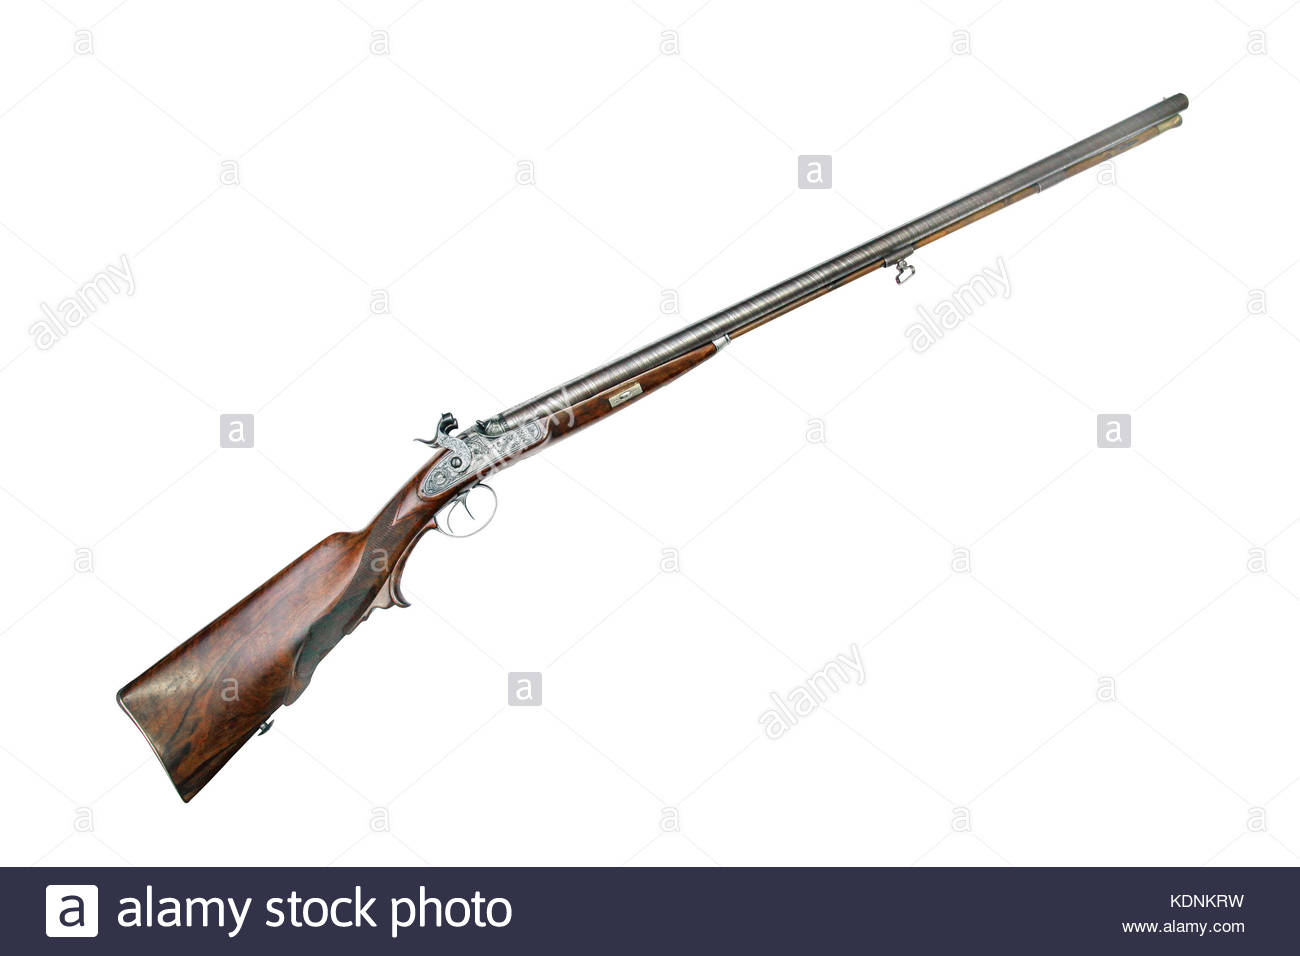 Hunting double-barrel gun with capsule lock. Austria. Vienna. 19th century. Barrels are from Damascus steel - Stock Image